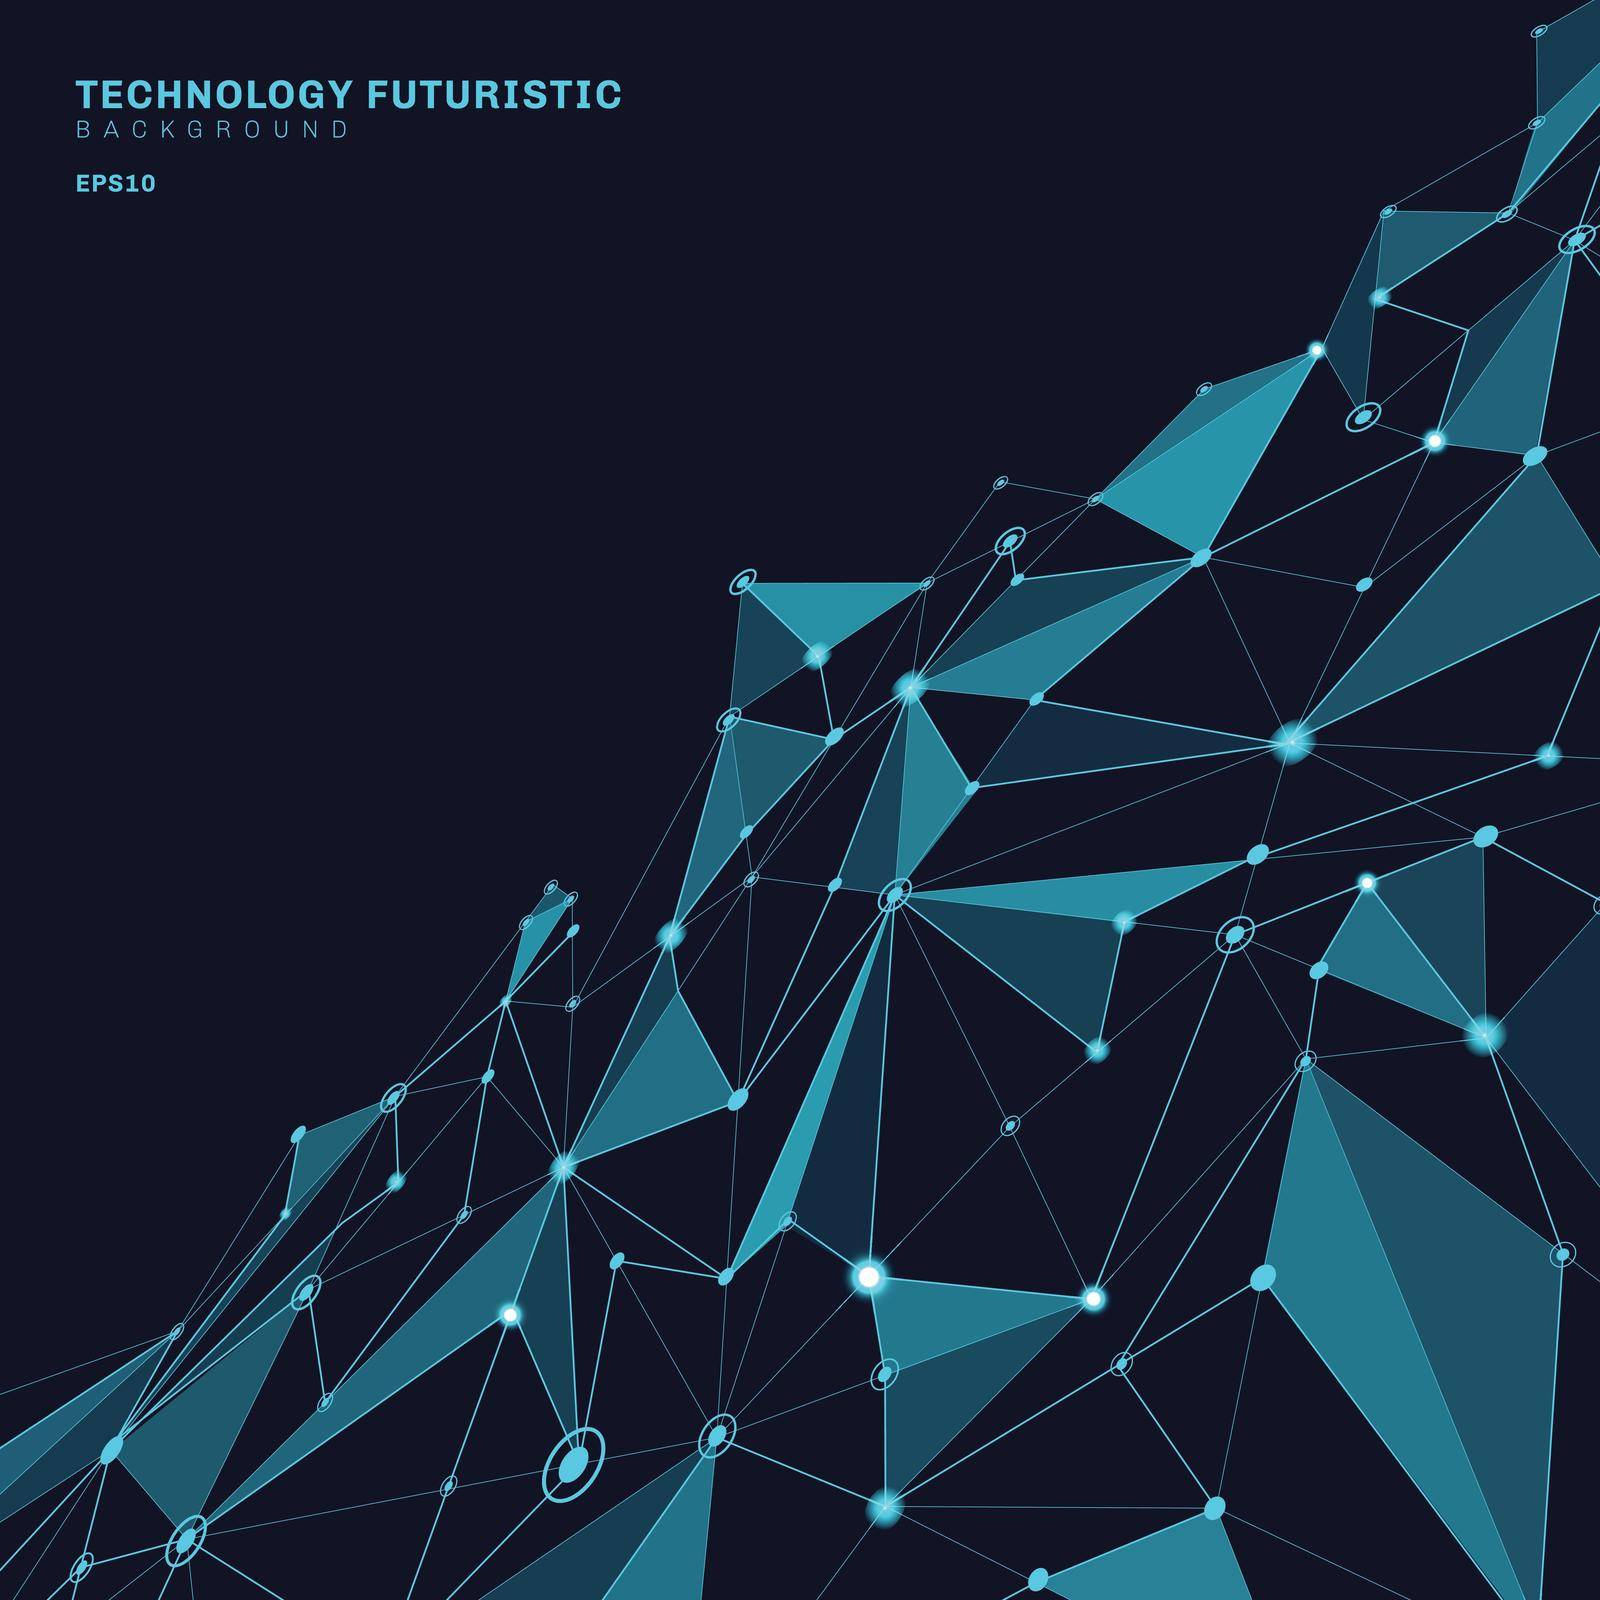 Abstract polygonal shapes on dark blue perspective background consisting of lines and points in the form of planets and constellations technology concept. Digital internet connection. Vector illustration